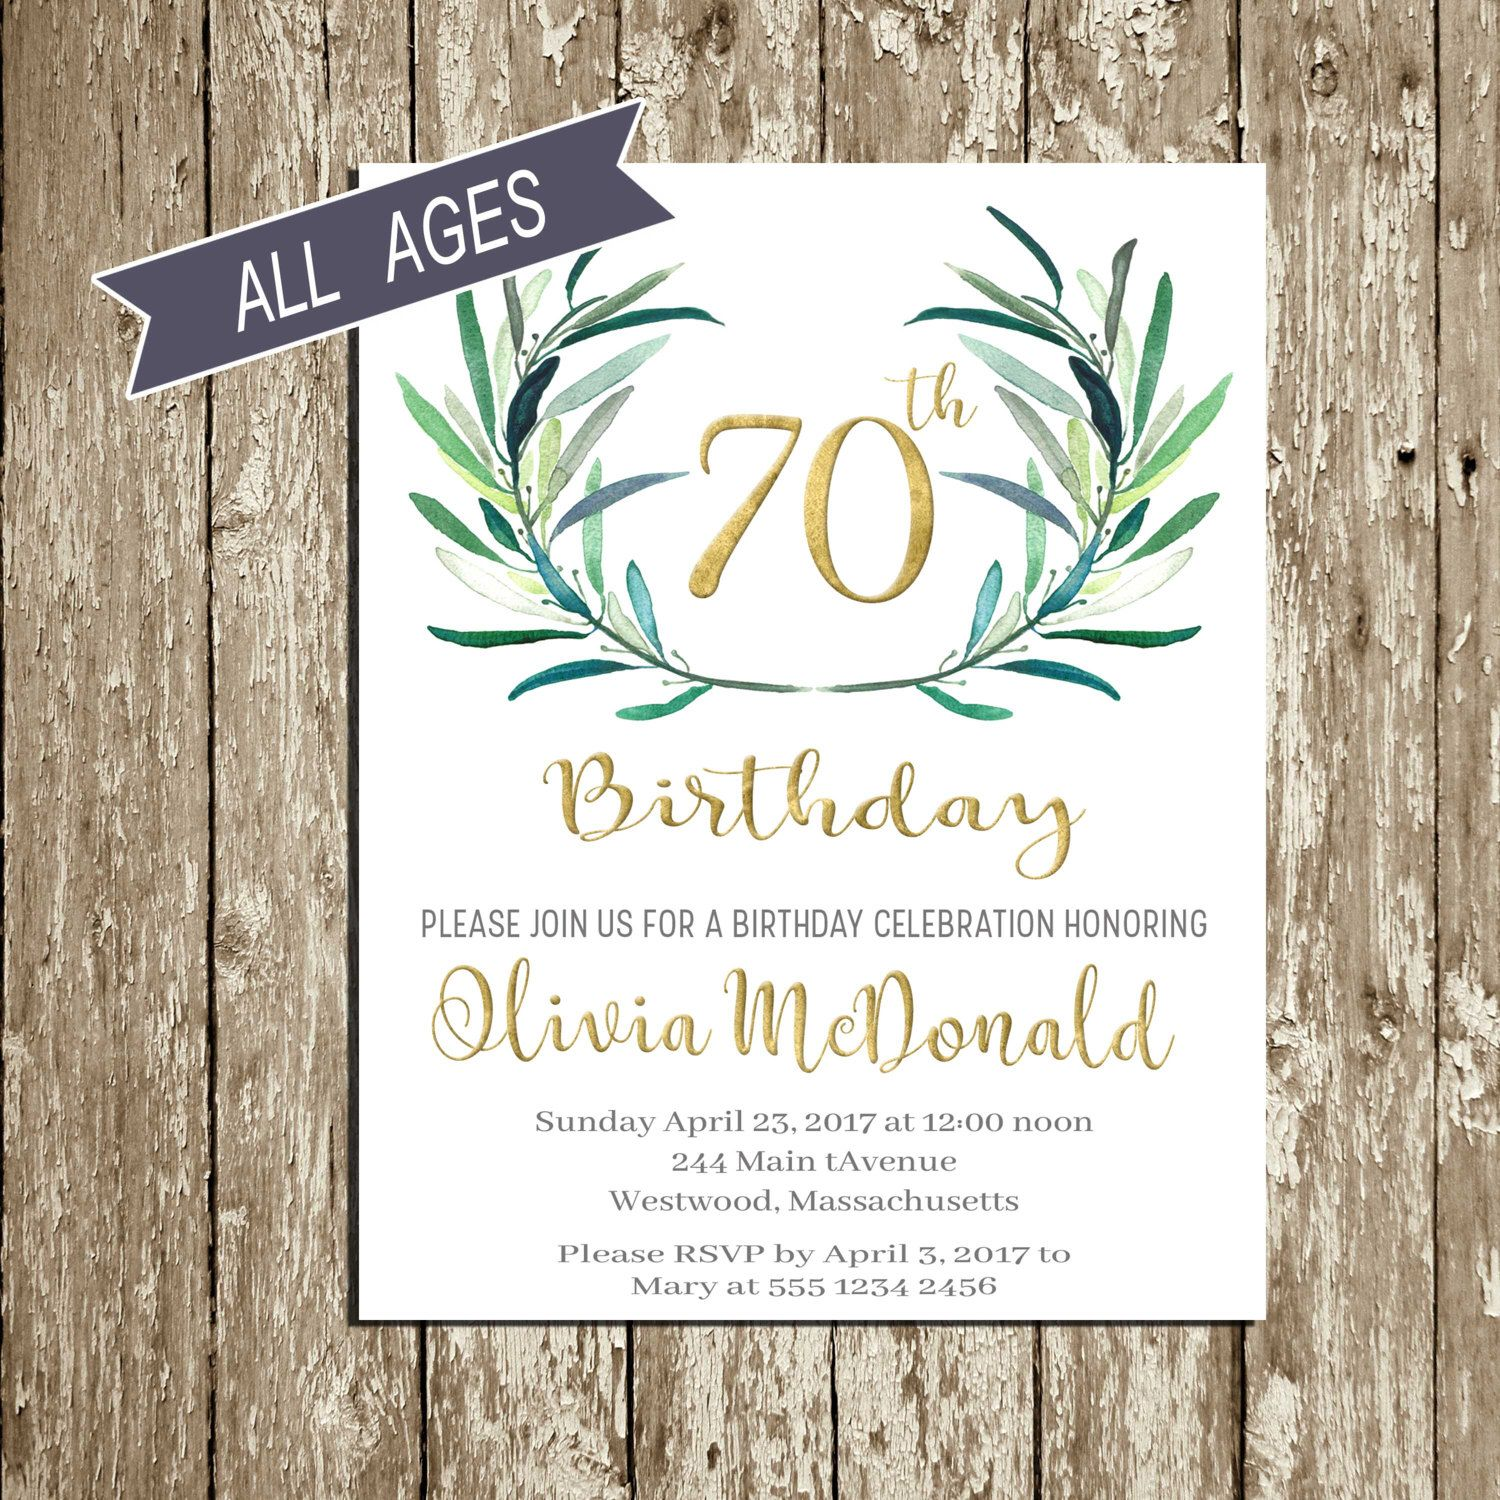 Birthday Brunch 70th Parties Gold 90th Invitations Woman